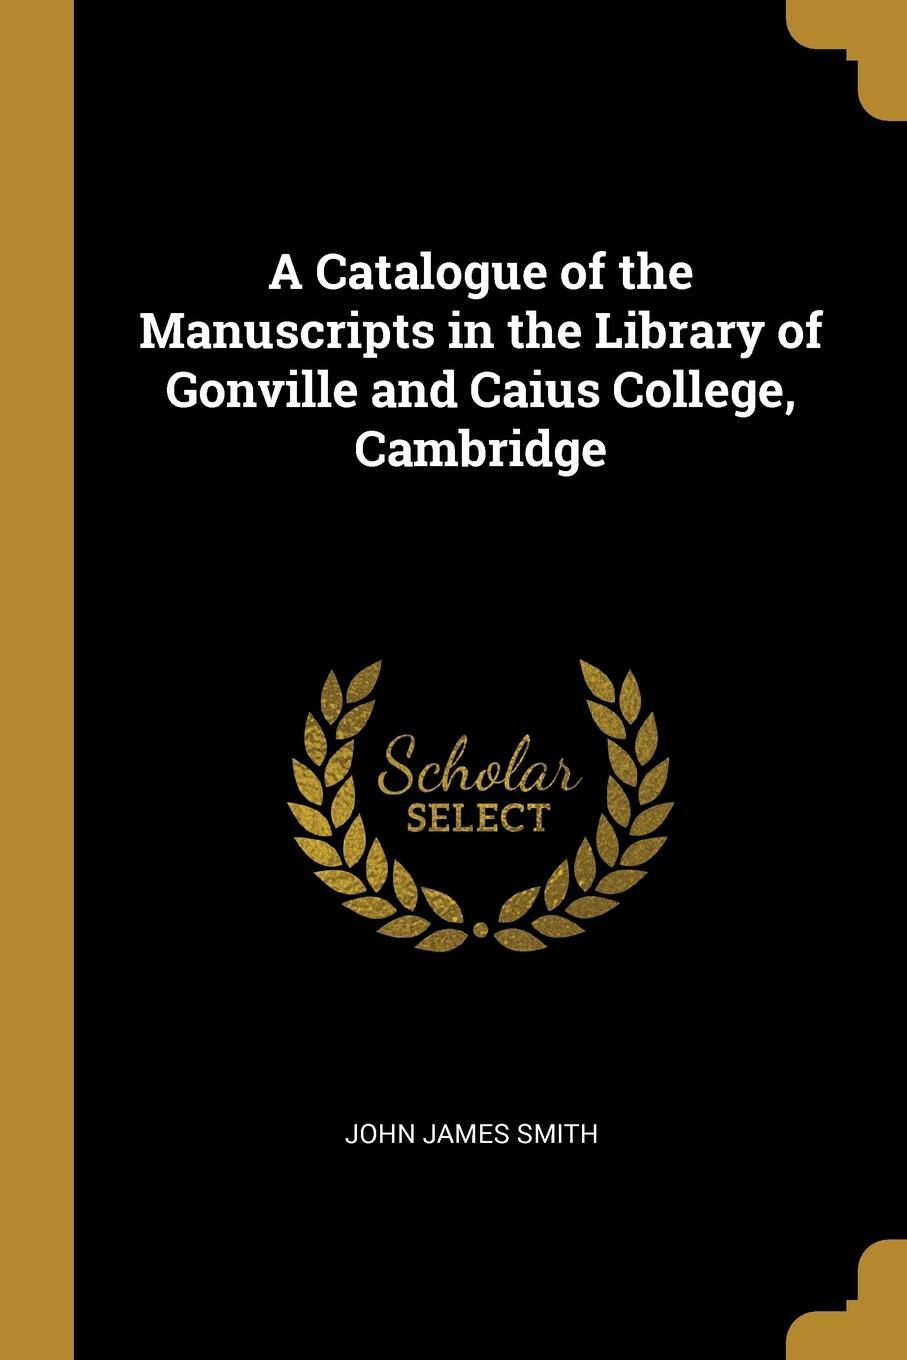 A Catalogue of the Manuscripts in the Library of Gonville and Caius College, Cambridge. John James Smith